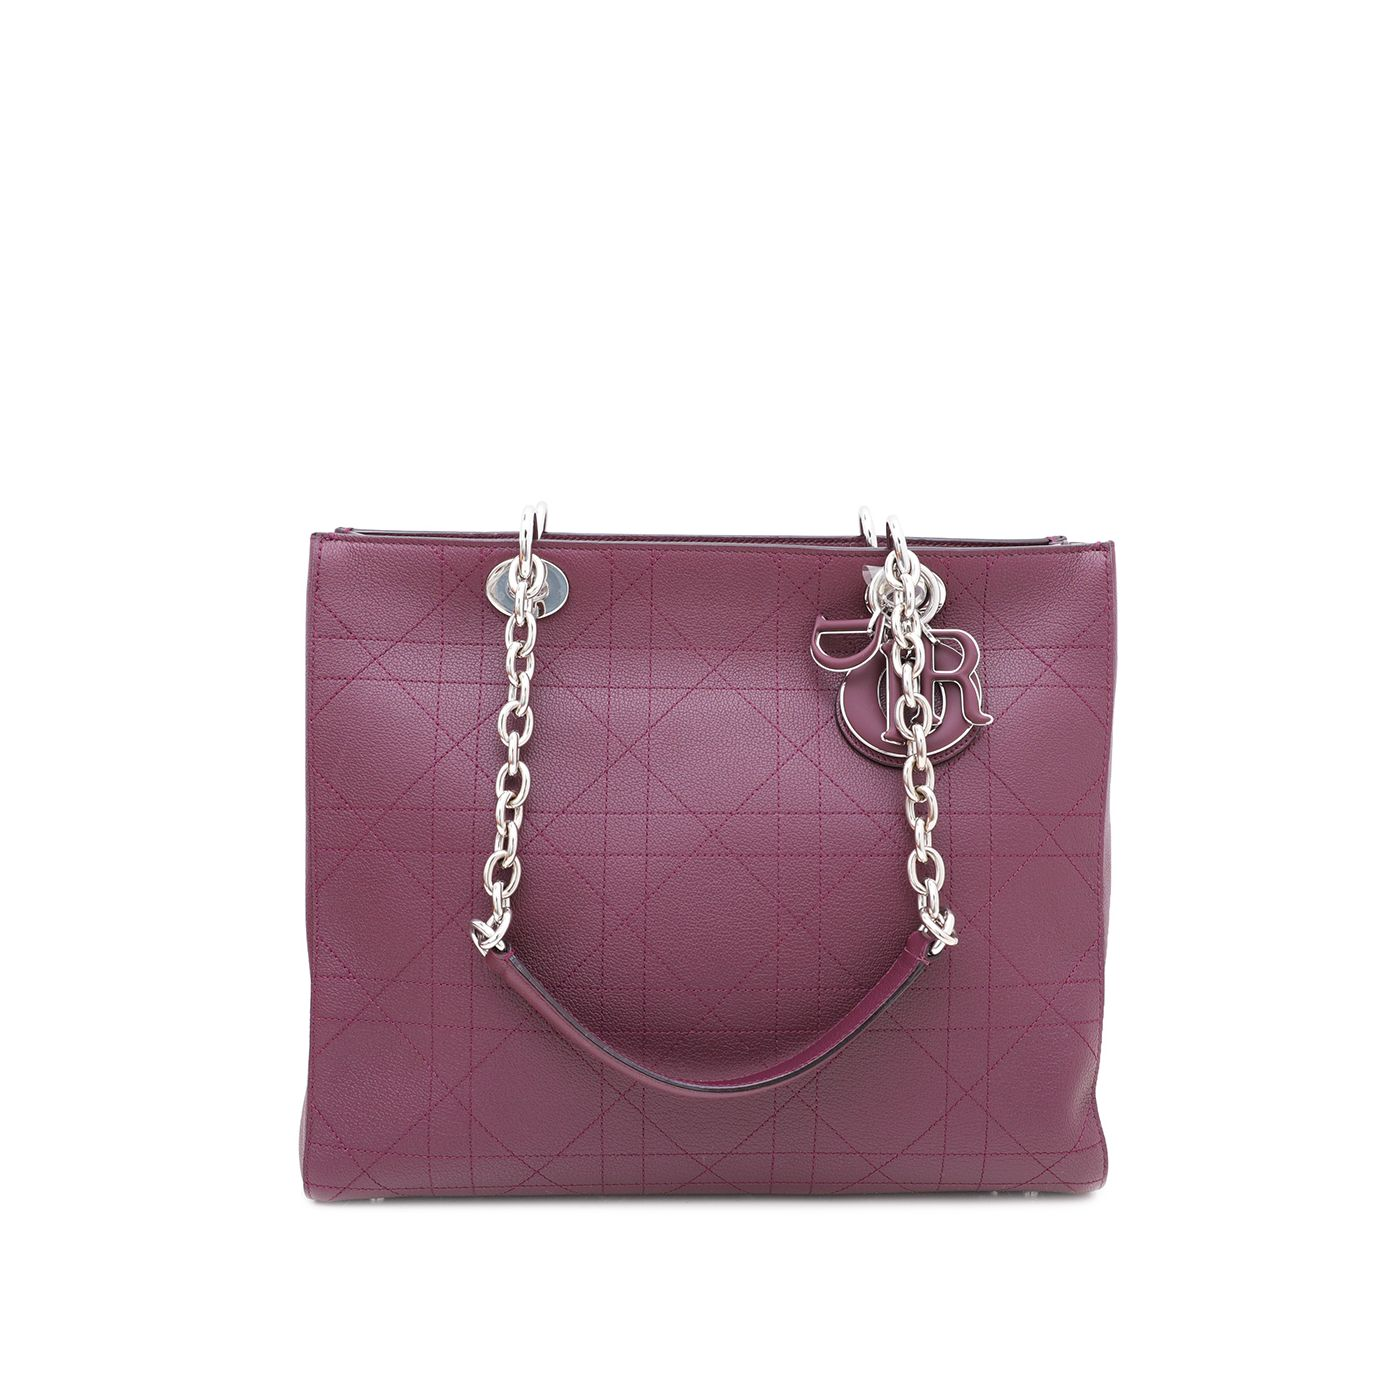 Christian Dior Violet Ultradior Tote Bag